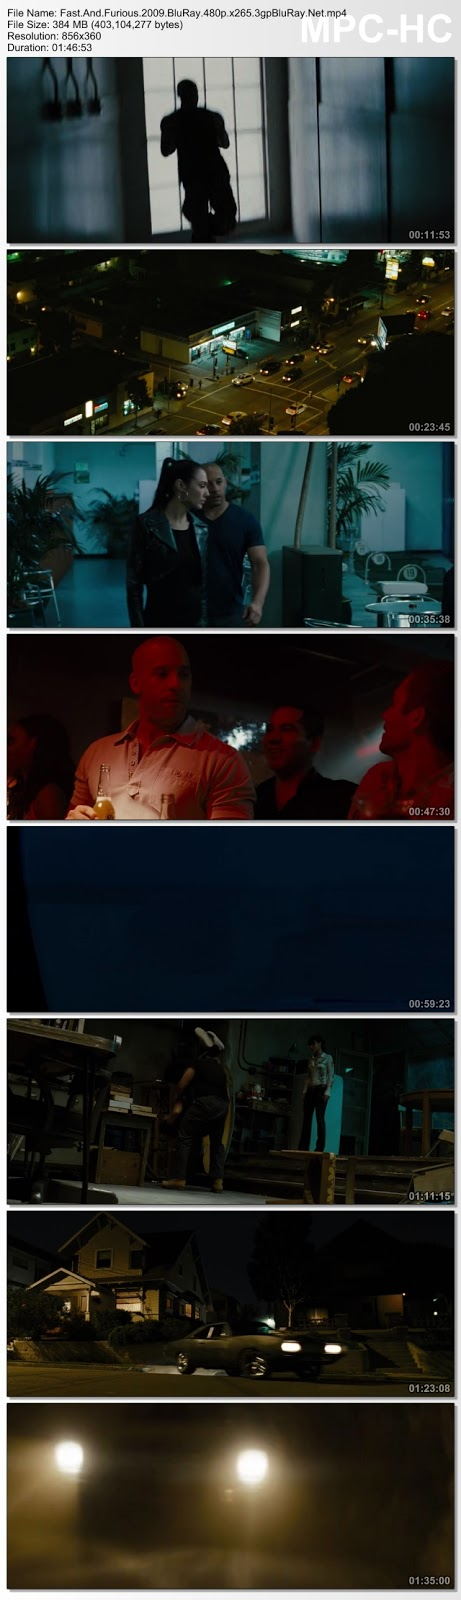 Screenshots Download Fast.And.Furious.2009.BluRay.480p.x265.3gpBluRay.Net.mp4